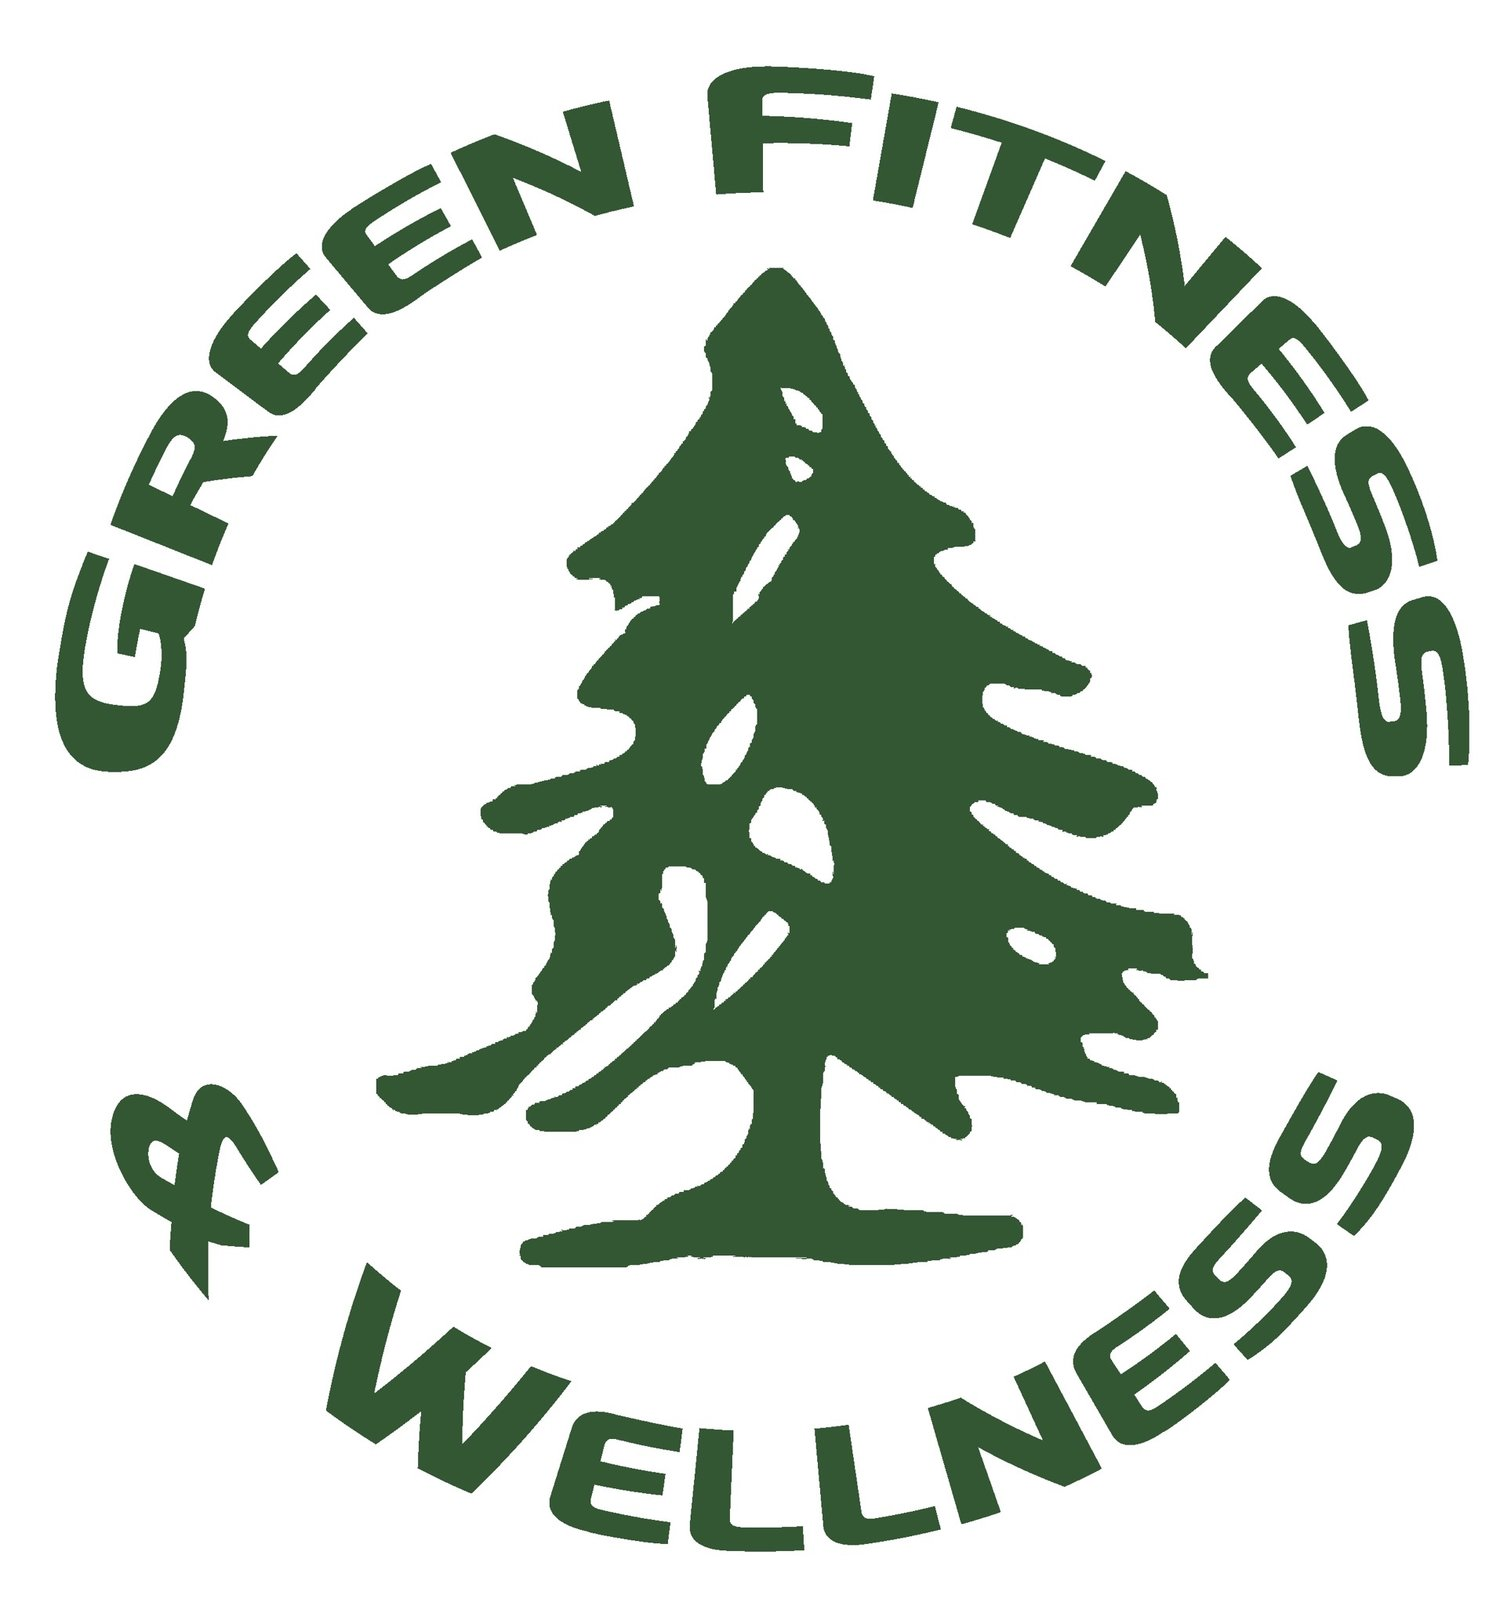 Green Fitness and Wellness